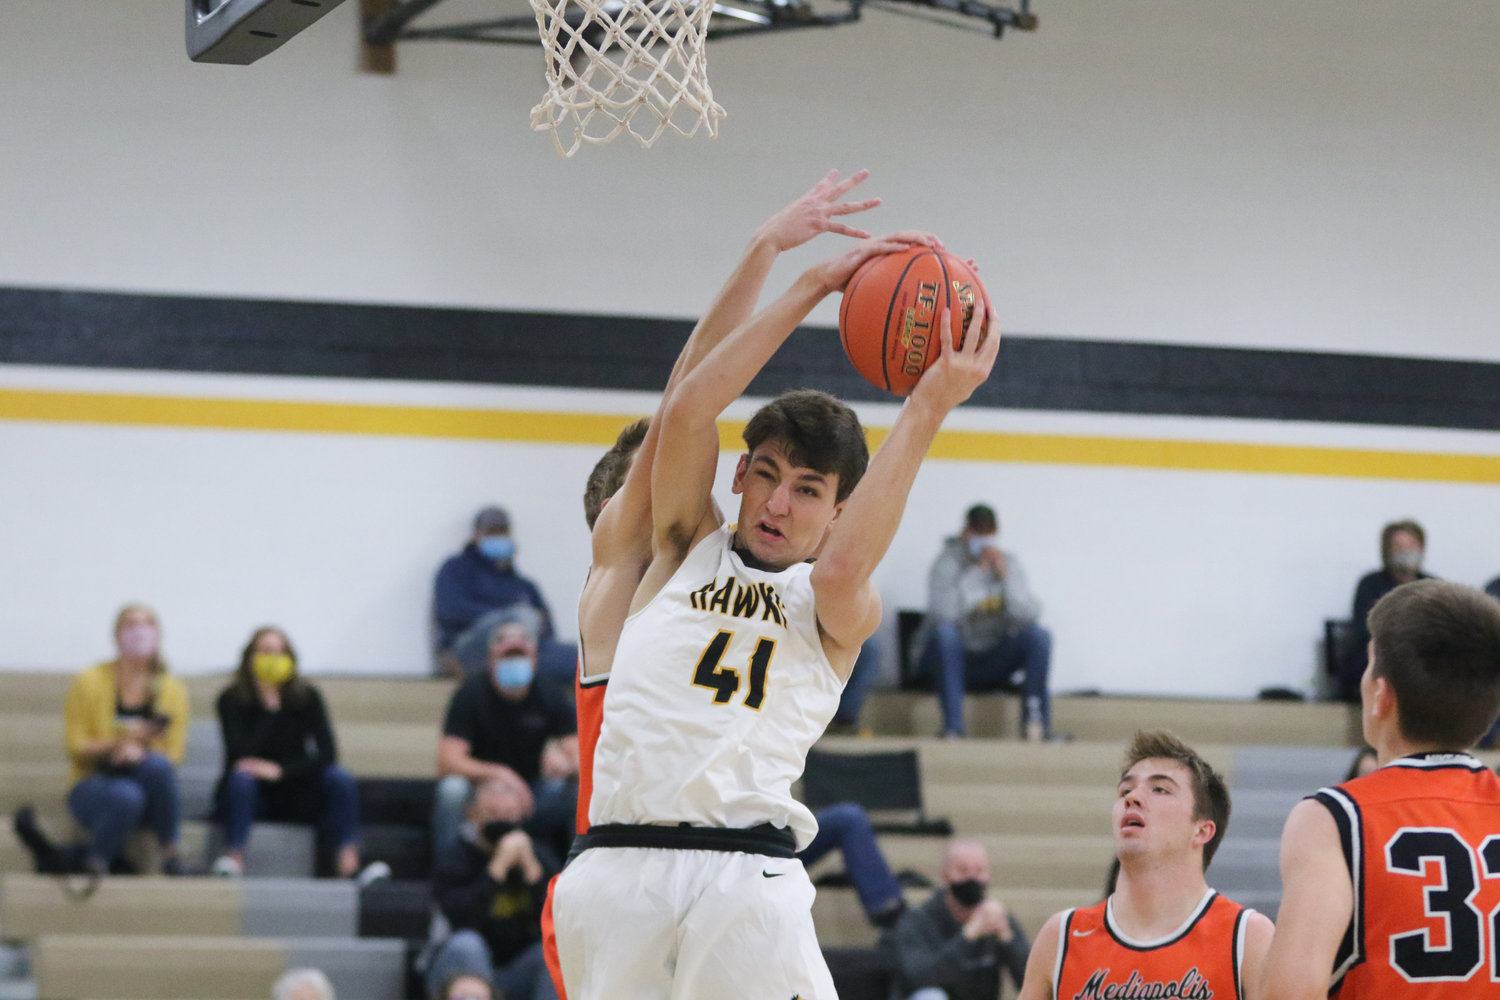 Mid-Prairie forward Ethan Kos grabs a rebound during the first quarter of a scrimmage with Mediapolis in Wellman on Saturday, November 21.